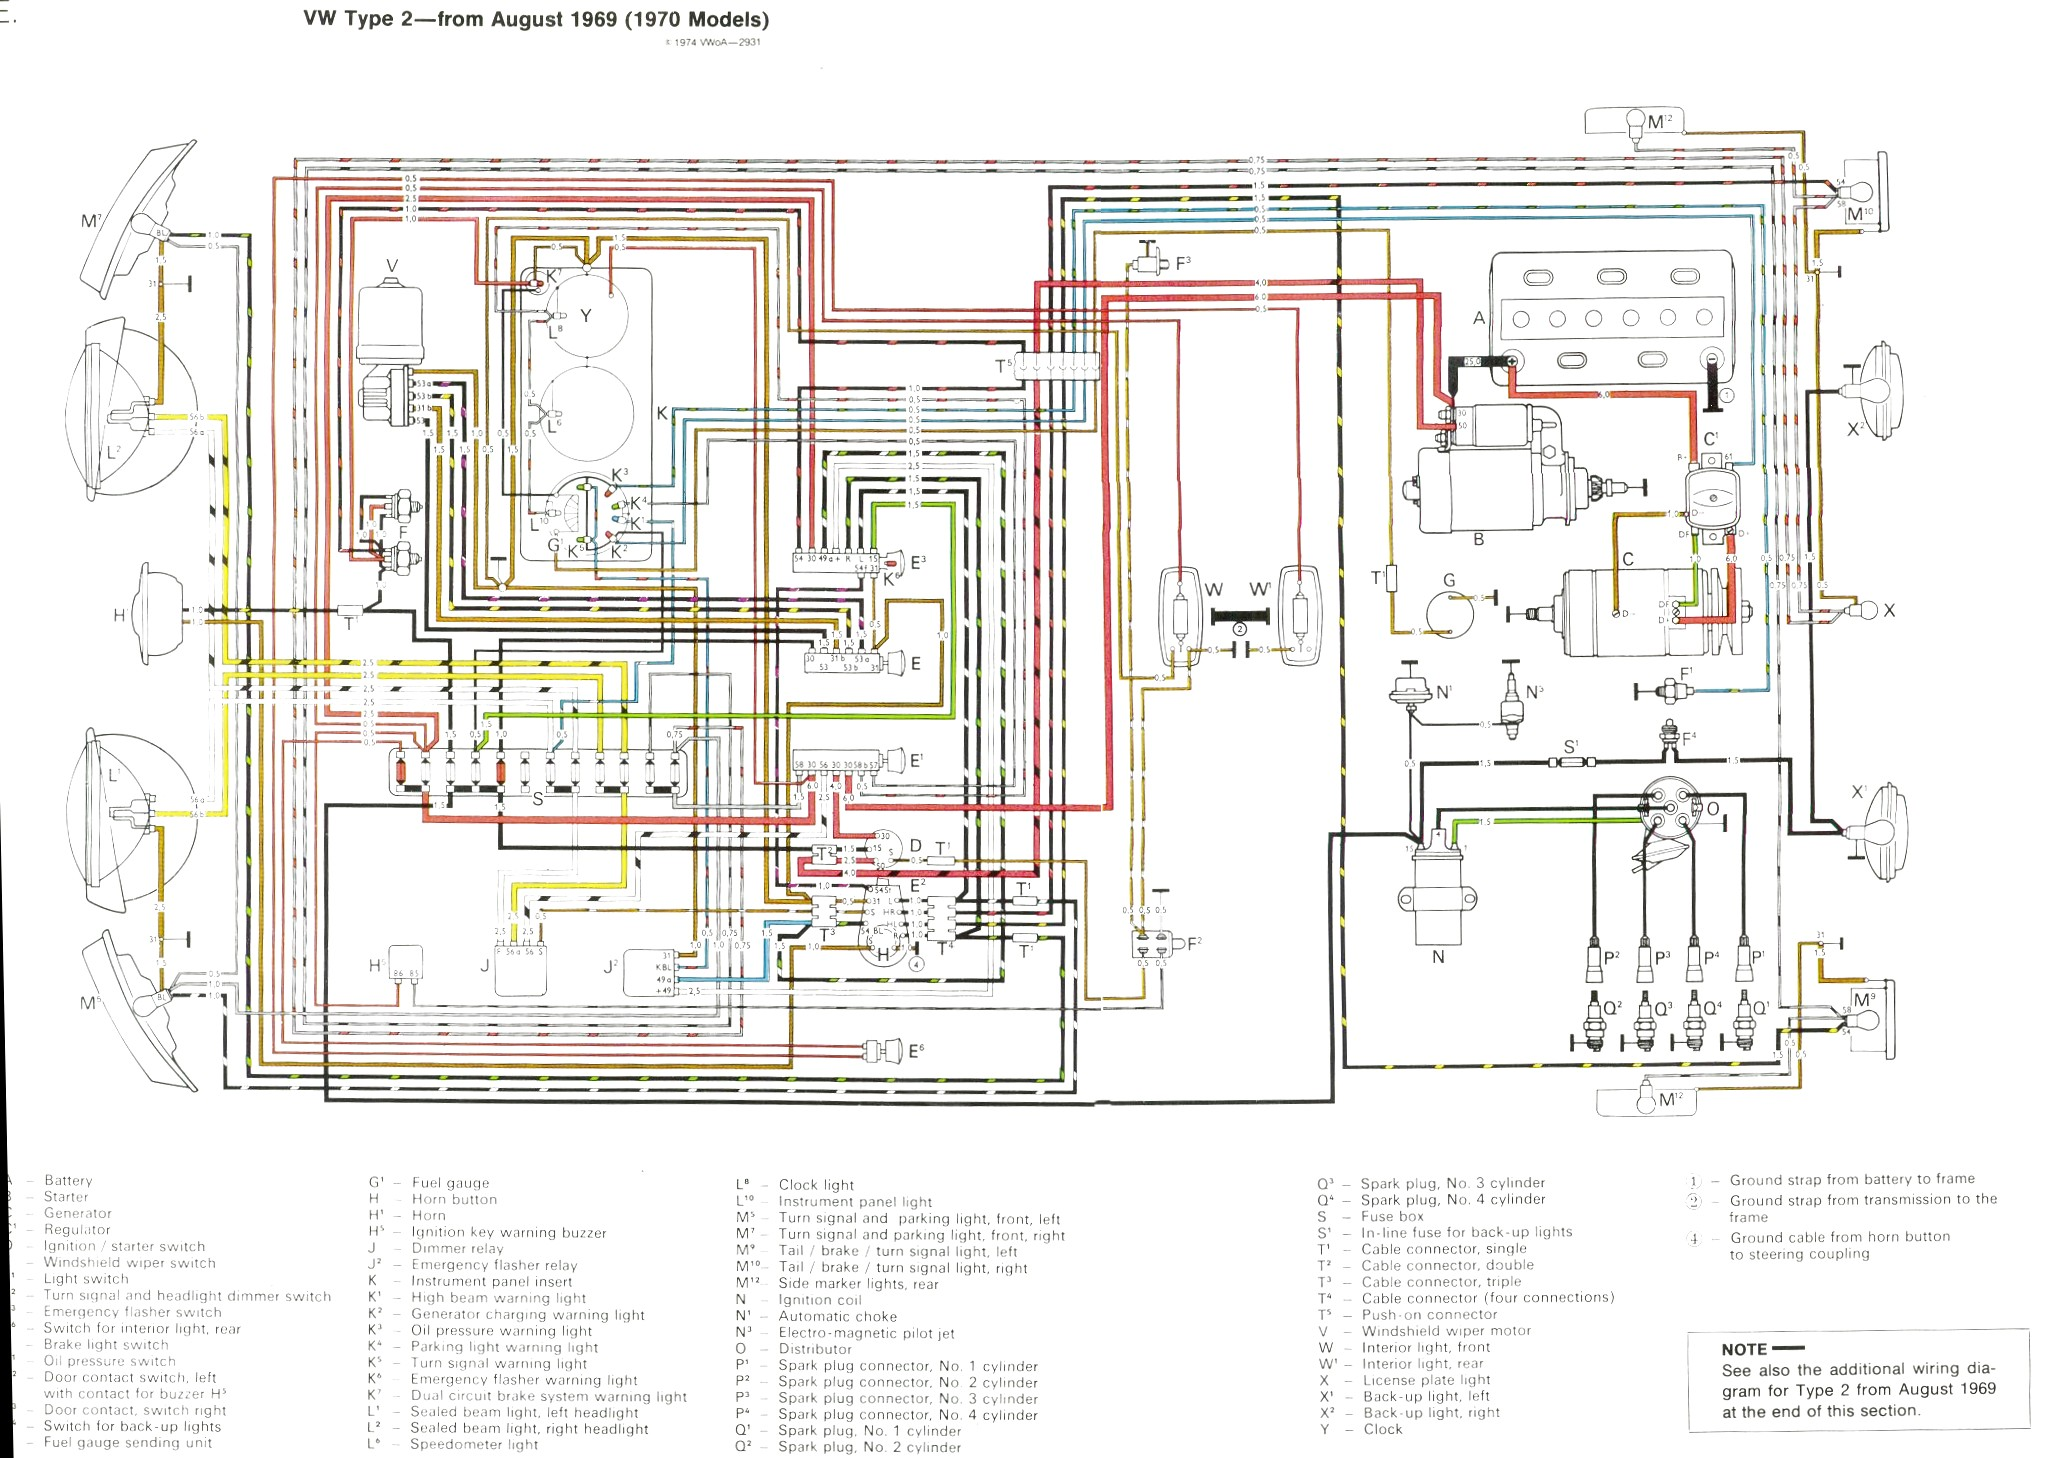 69 Bus Wiring Diagram Wiring Diagram Schemes 69 Ford Van 69 Vw Van Wiring